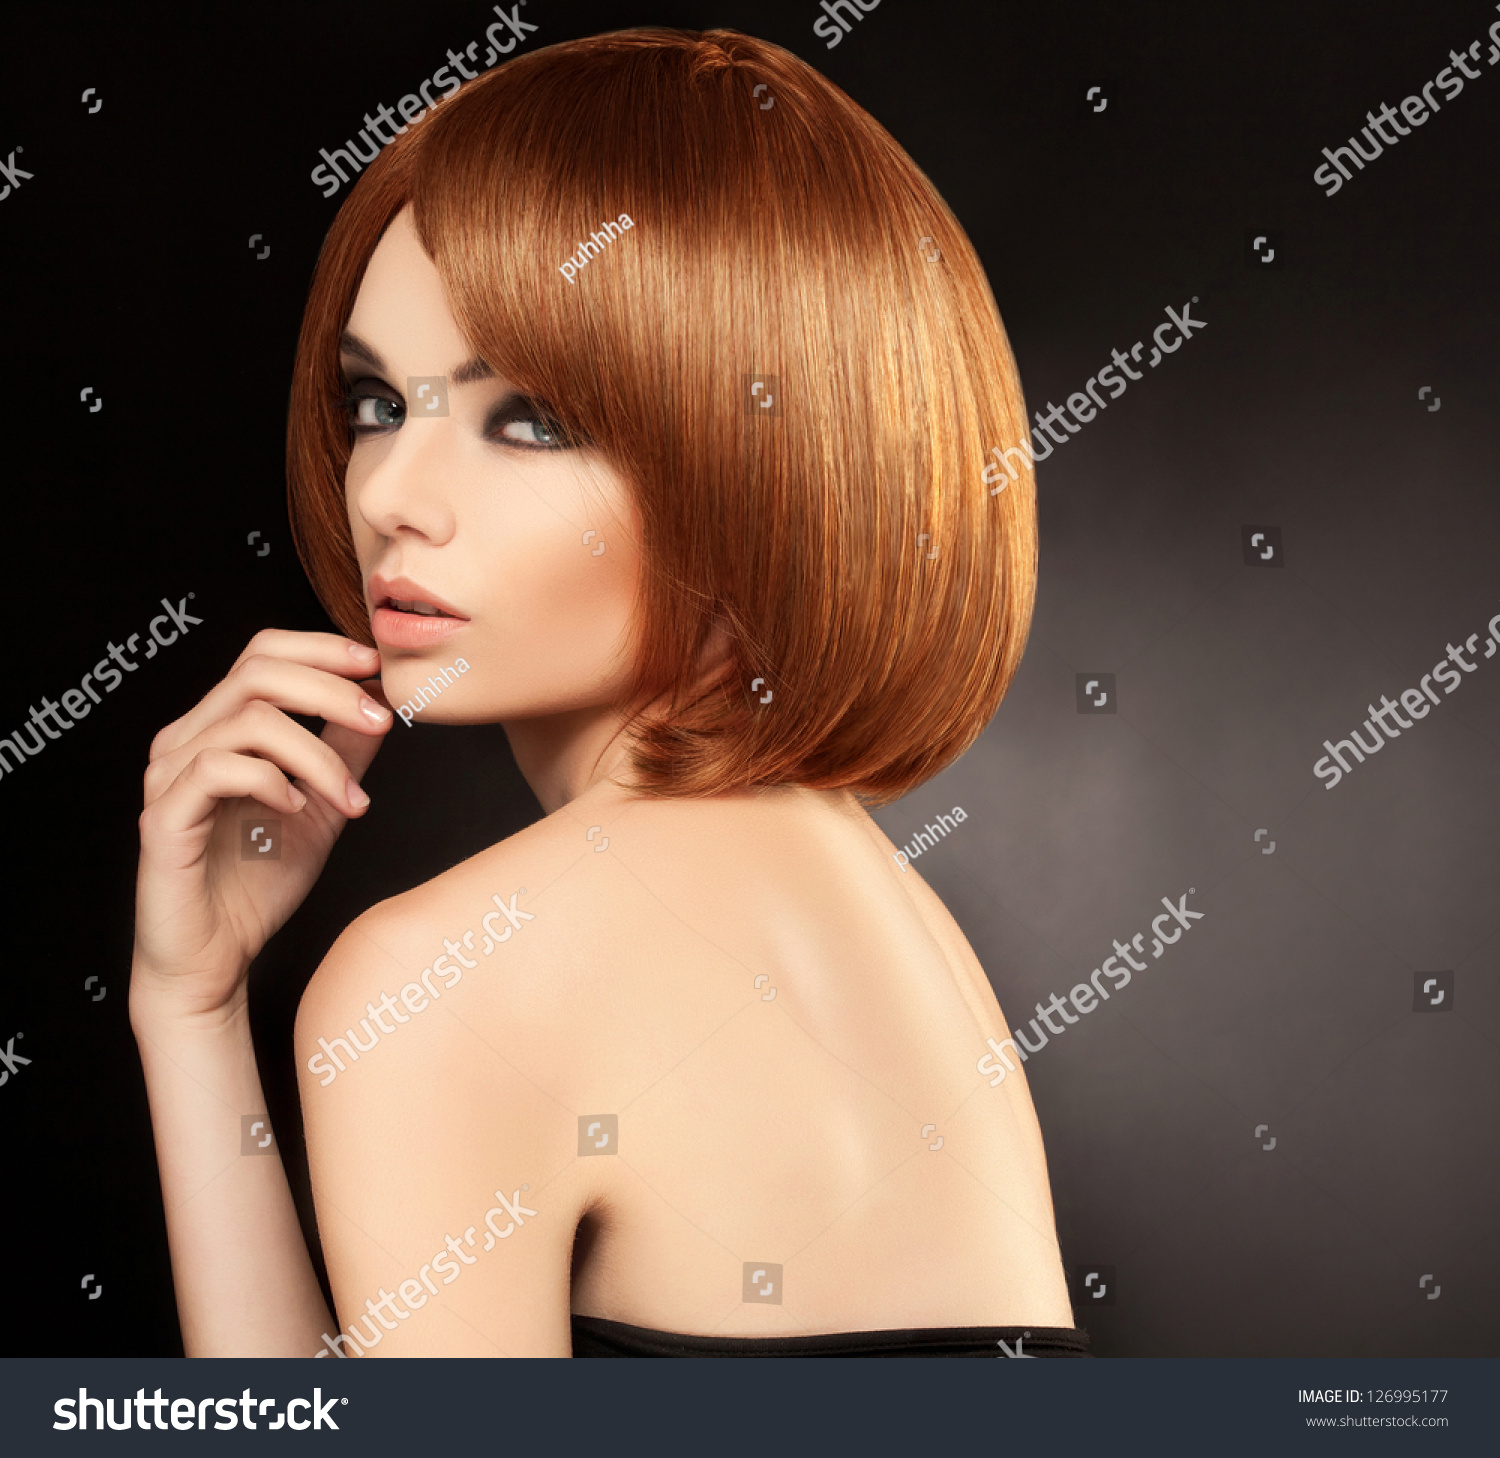 red hair beautiful woman short hair stock photo 126995177 shutterstock. Black Bedroom Furniture Sets. Home Design Ideas